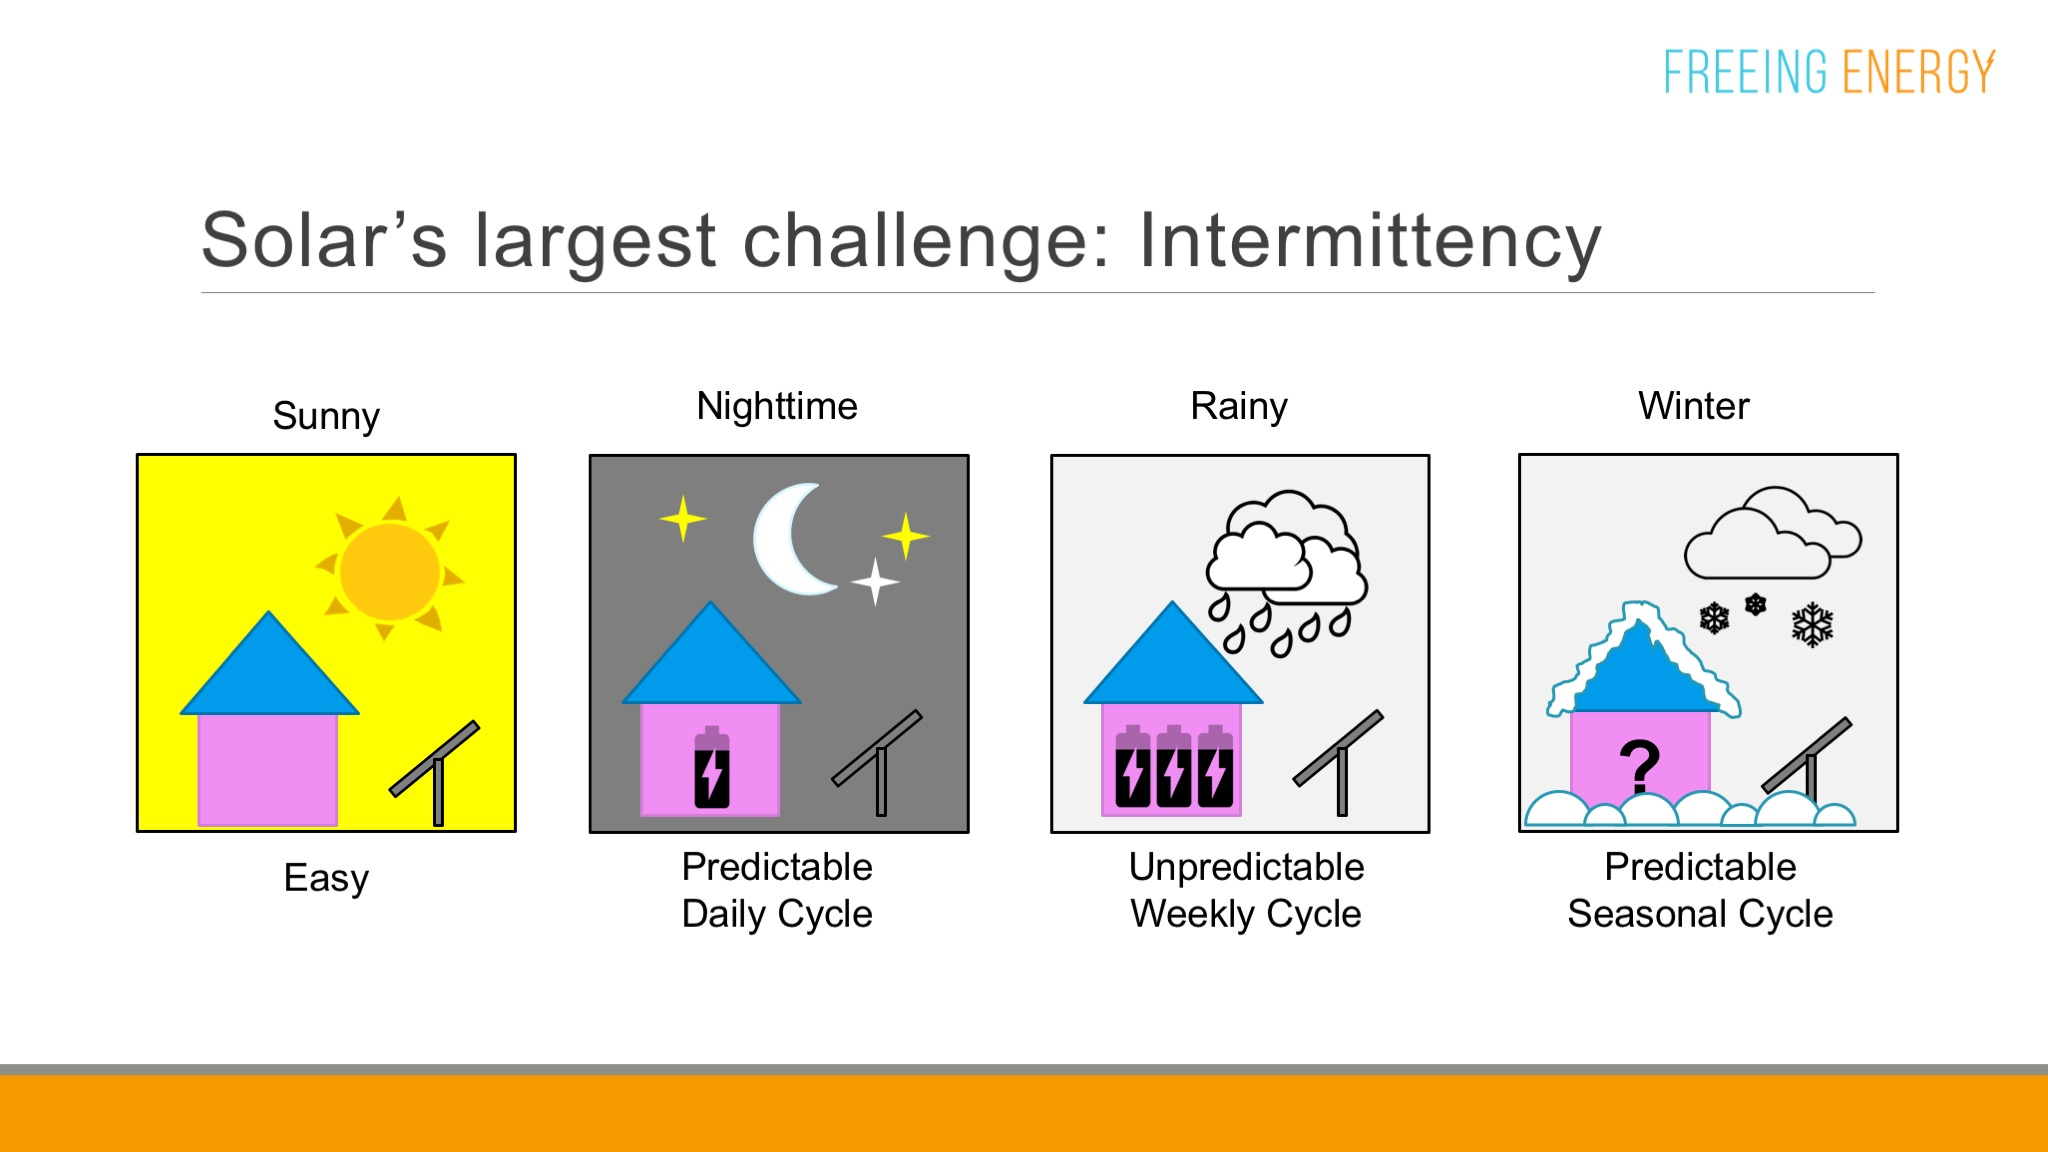 How solar panels fare in different weather conditions